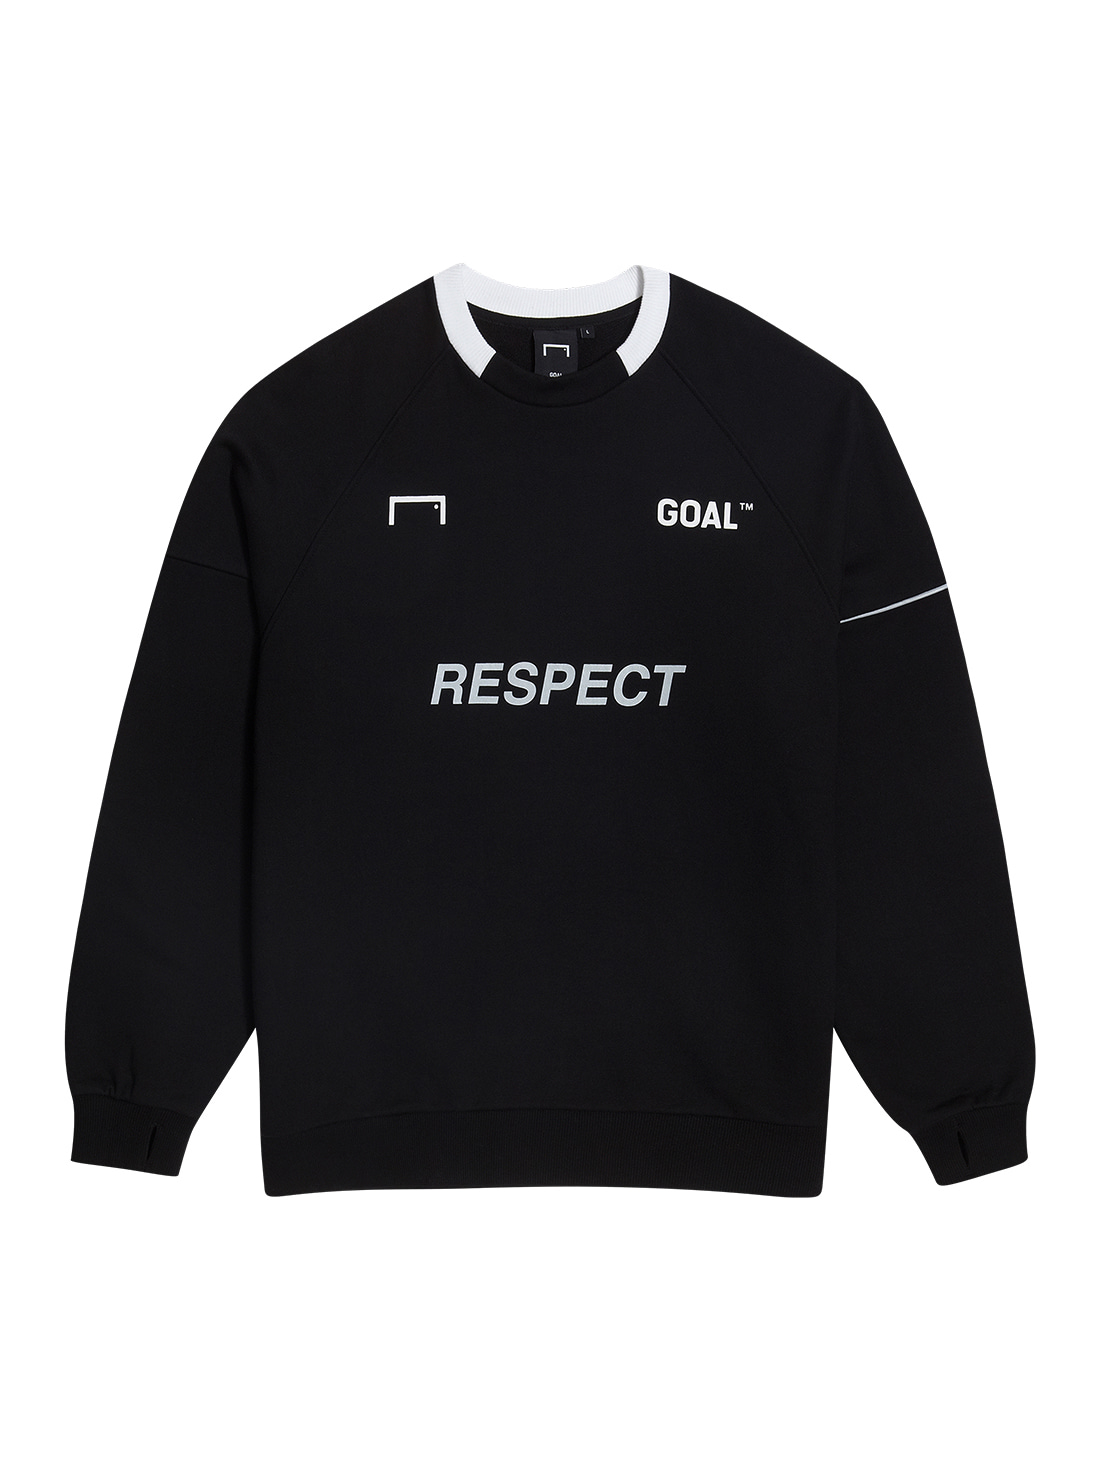 GOALSTUDIO (L,2XL)RESPECT SWEATSHIRT - BLACK